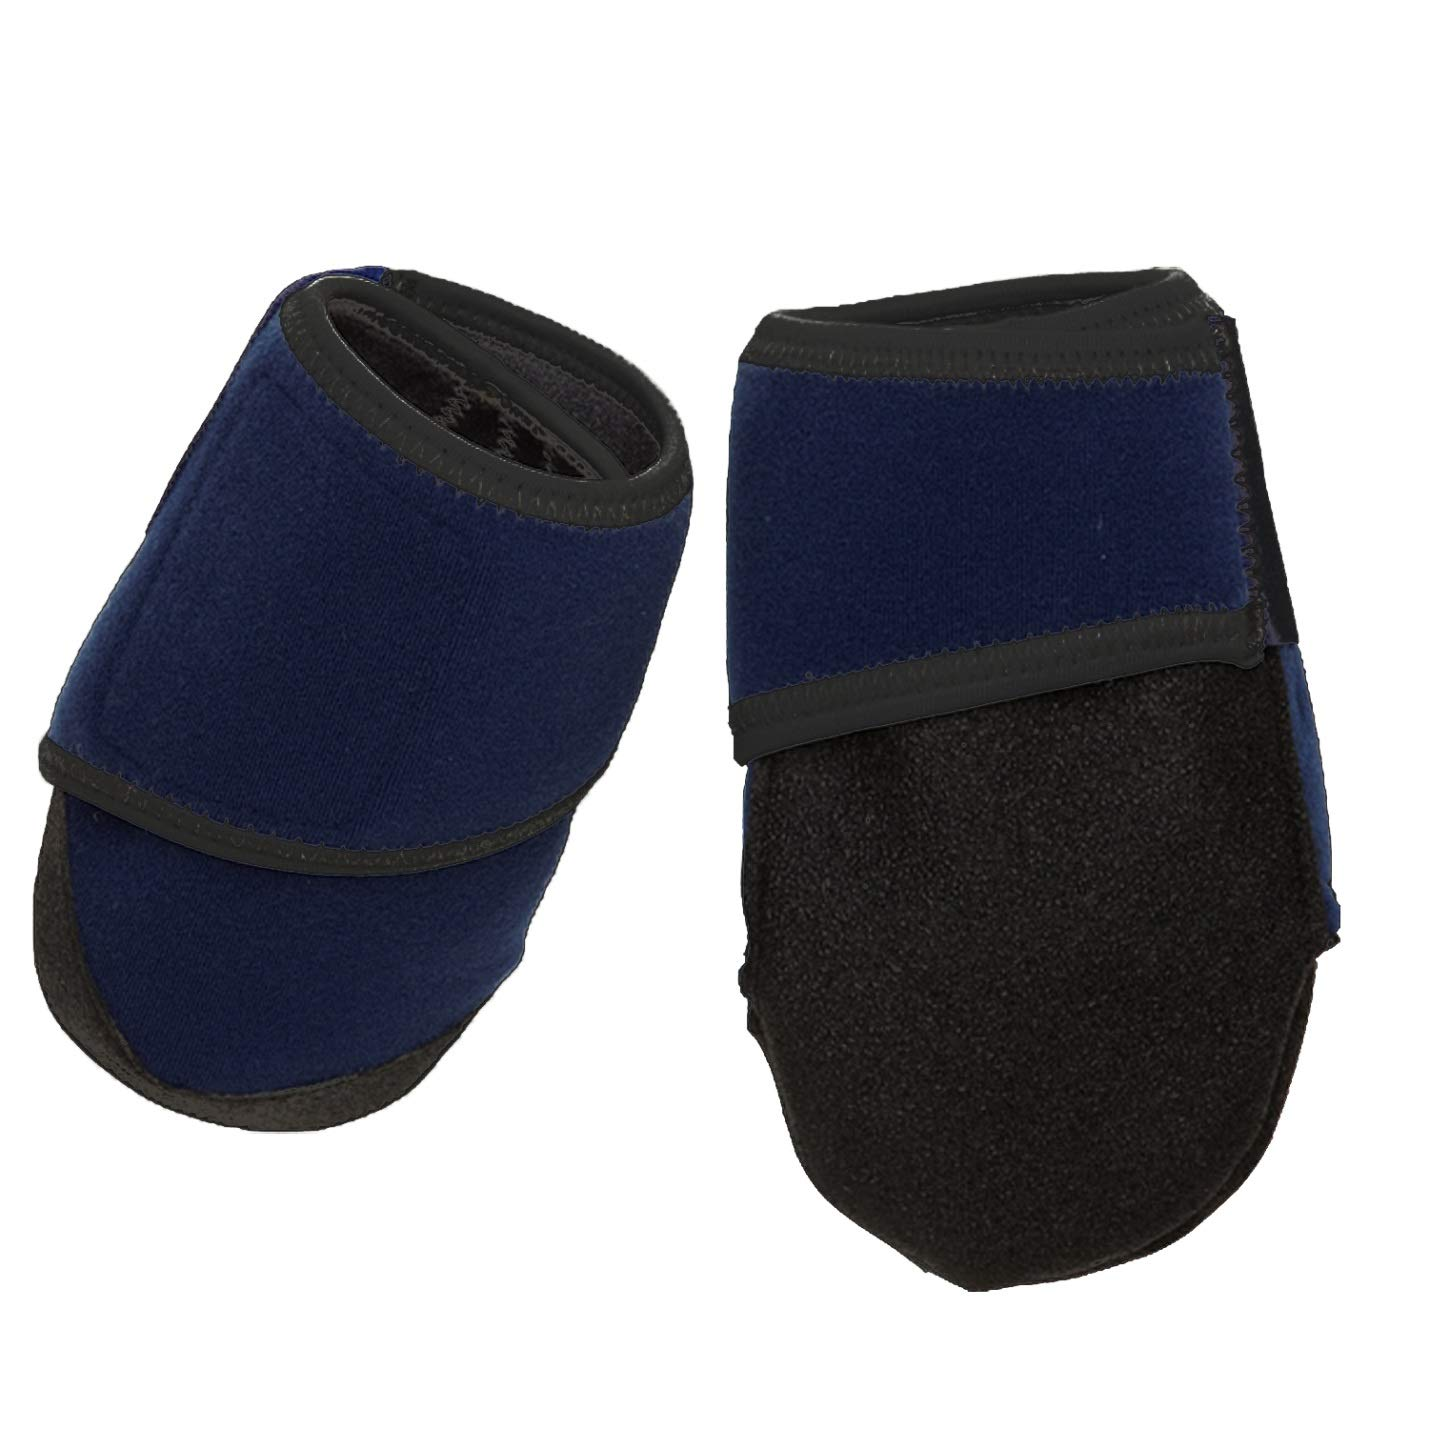 Healers Medical Dog Boots and Gauze Bandages, Box Set of 2 Boots with 2 Gauze Pads, Blue